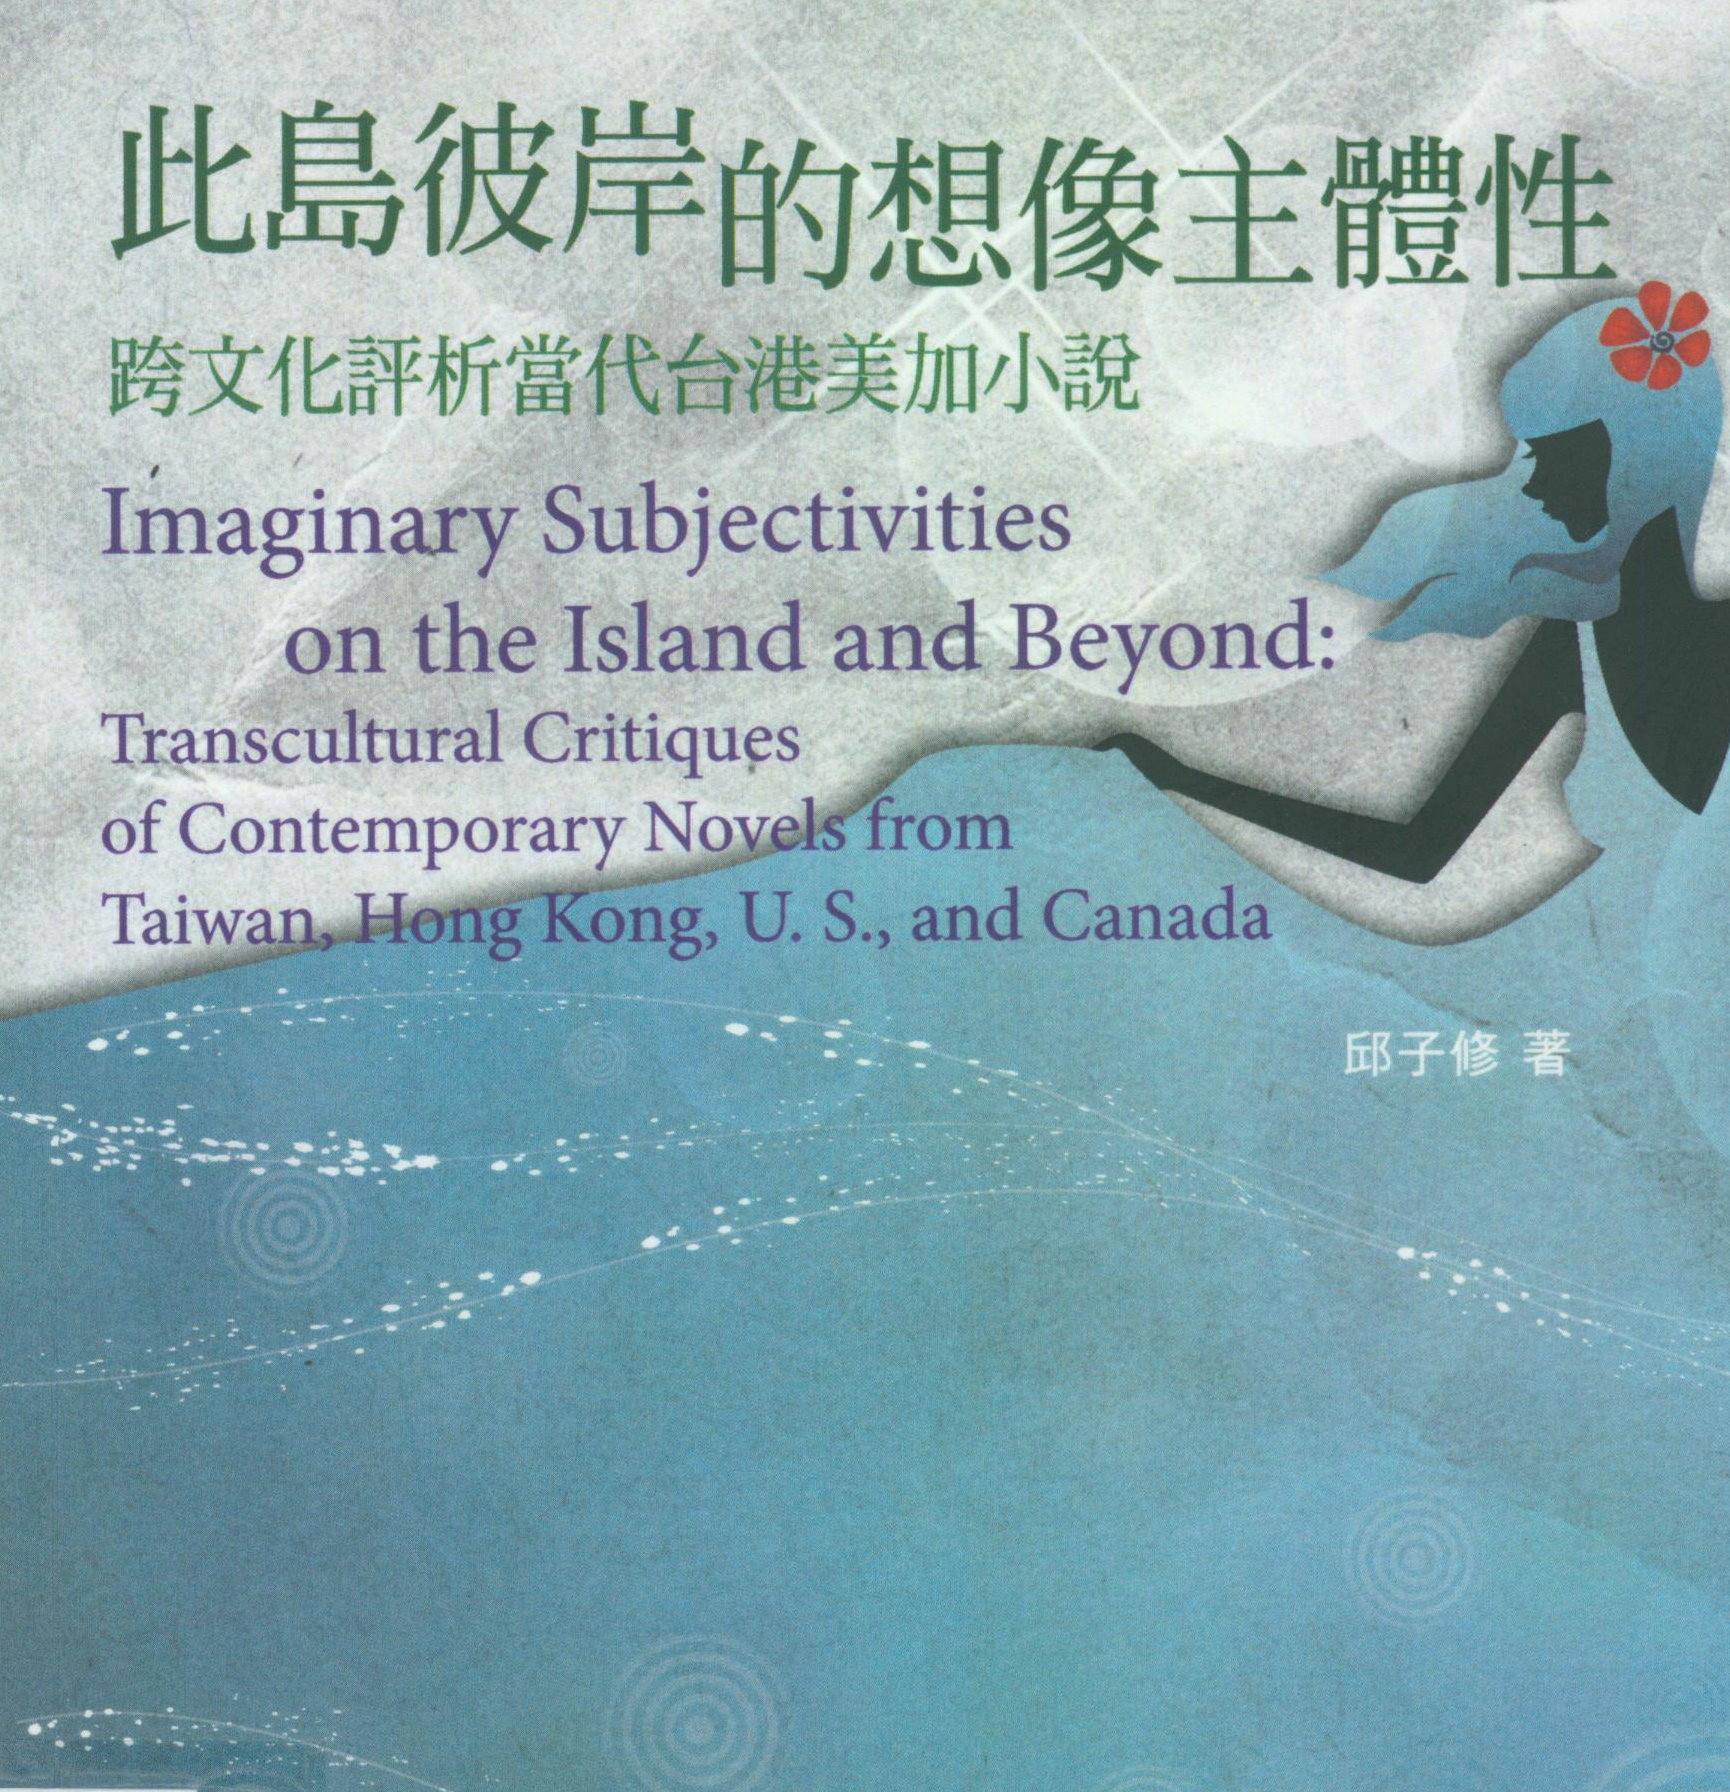 此島彼岸的想像主體性 : 跨文化評析當代台港美加小說